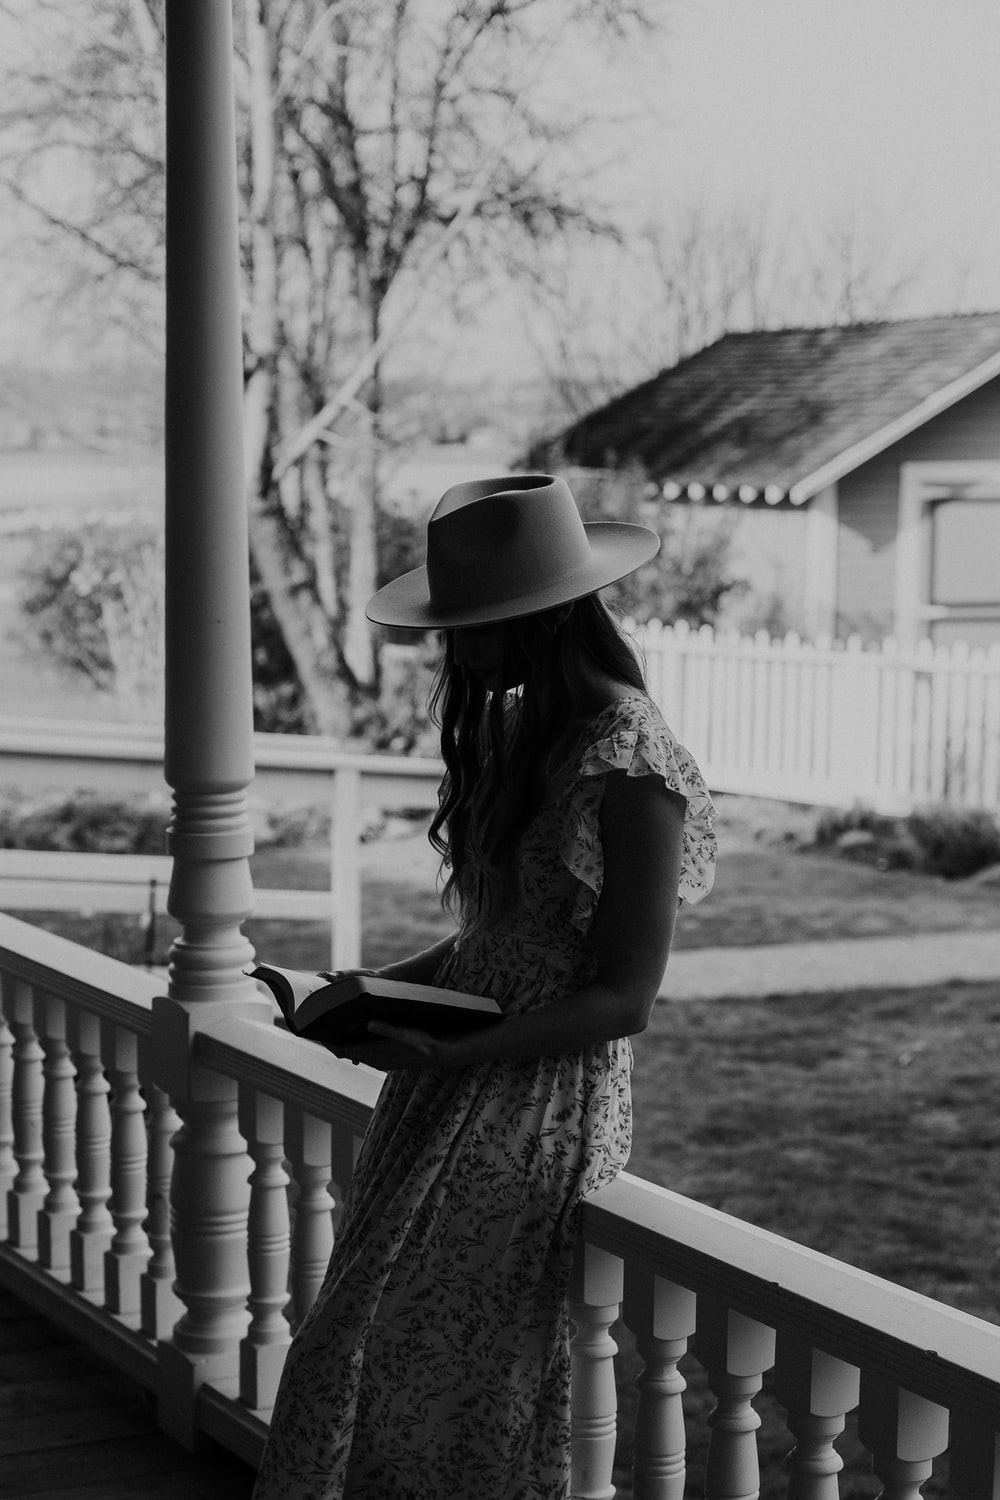 grayscale photo of woman in floral dress and hat sitting on wooden bench